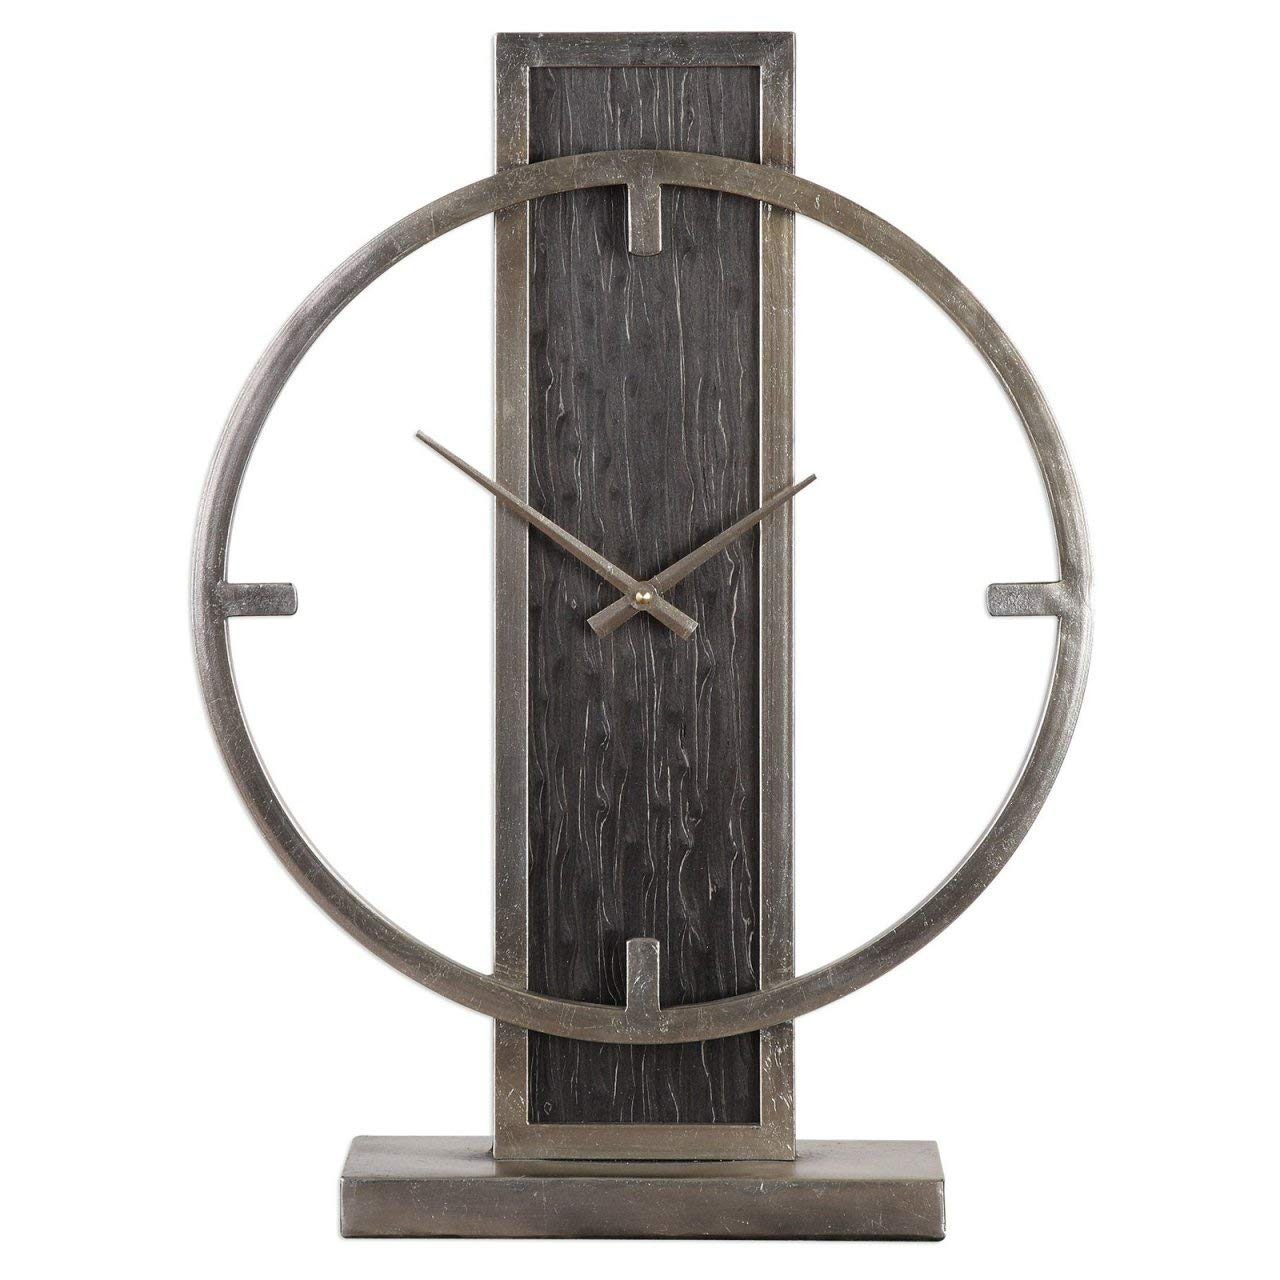 MODE HOME Rustic Silver Table Clock on Stand Vintage Desk Clock Mantel Clock Decorative